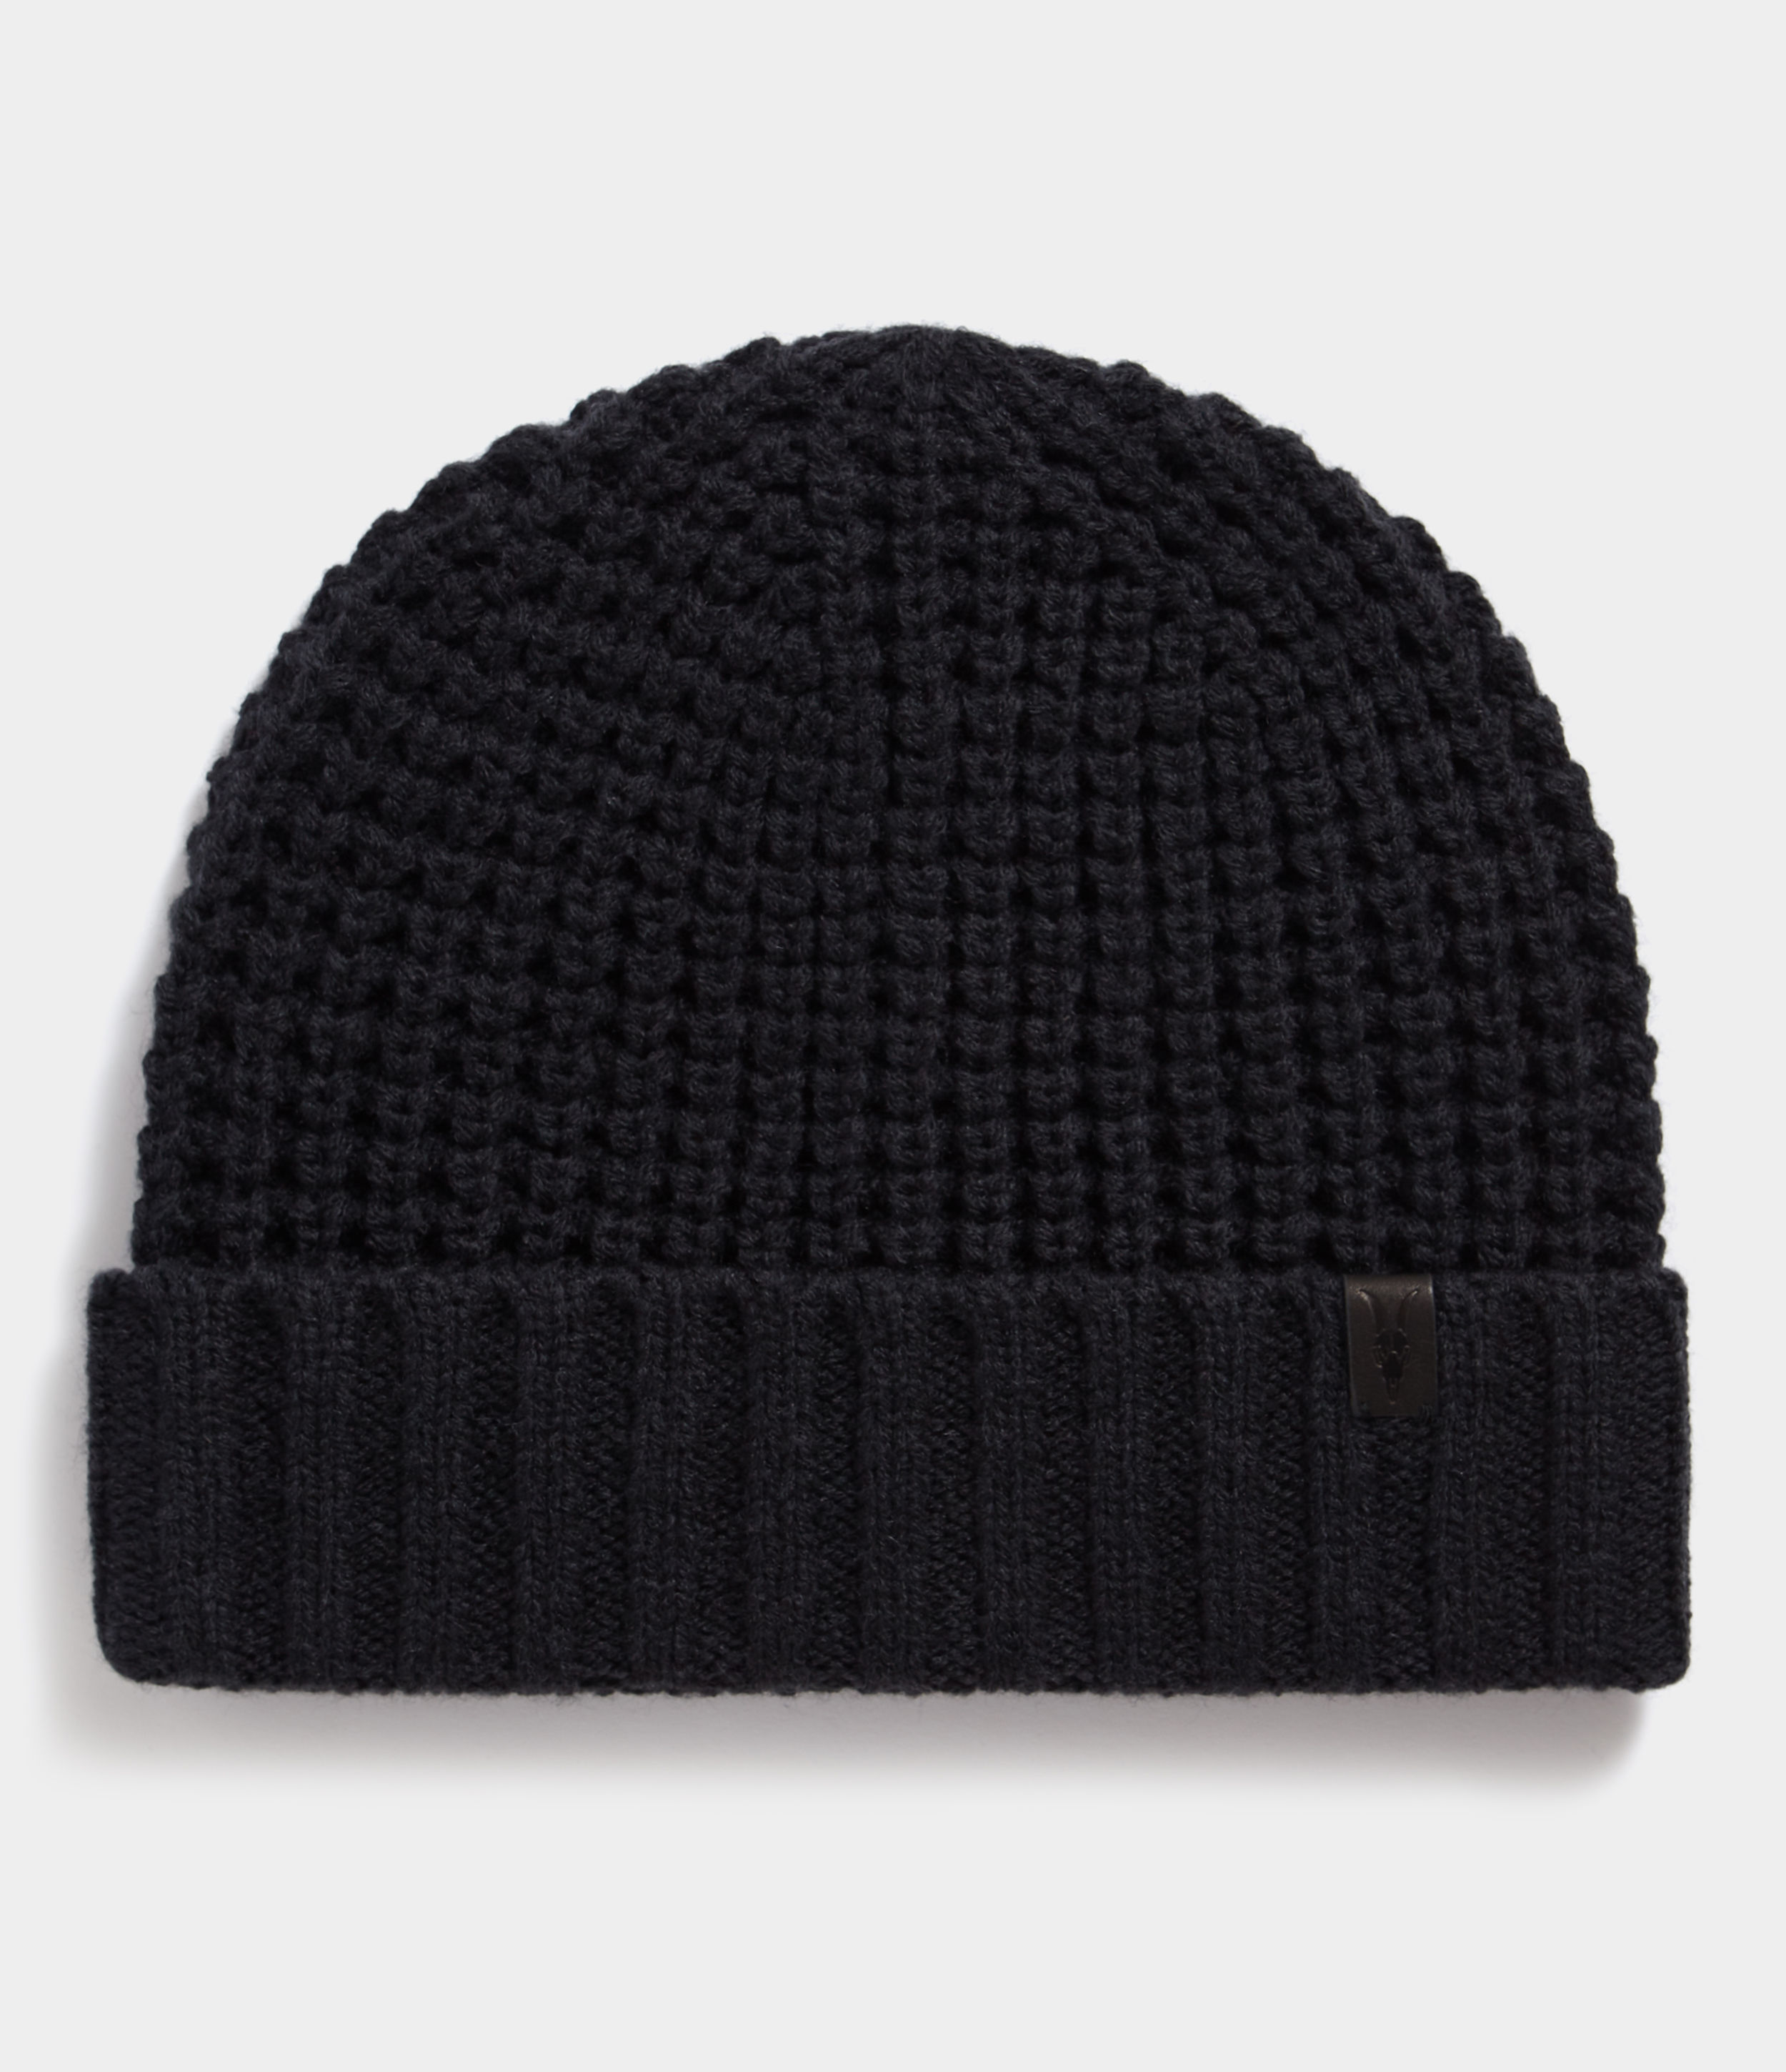 AllSaints Cinder Black Marl Thermal Stitch Beanie